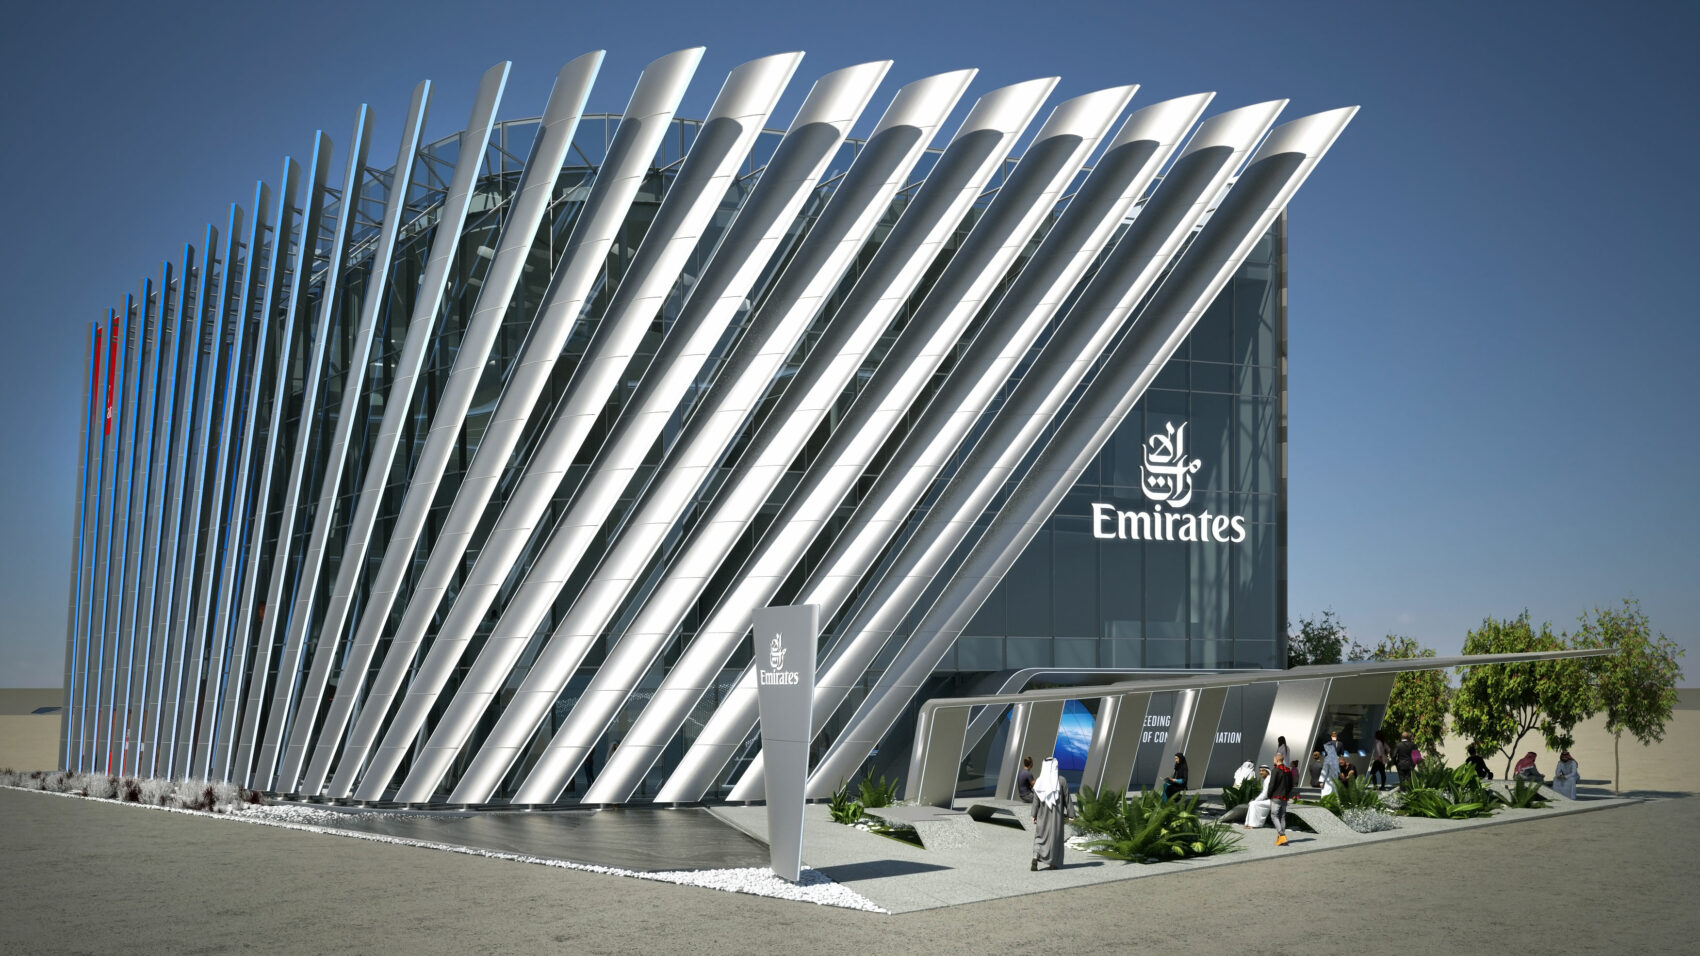 Emirates Expo 2020 pavilion